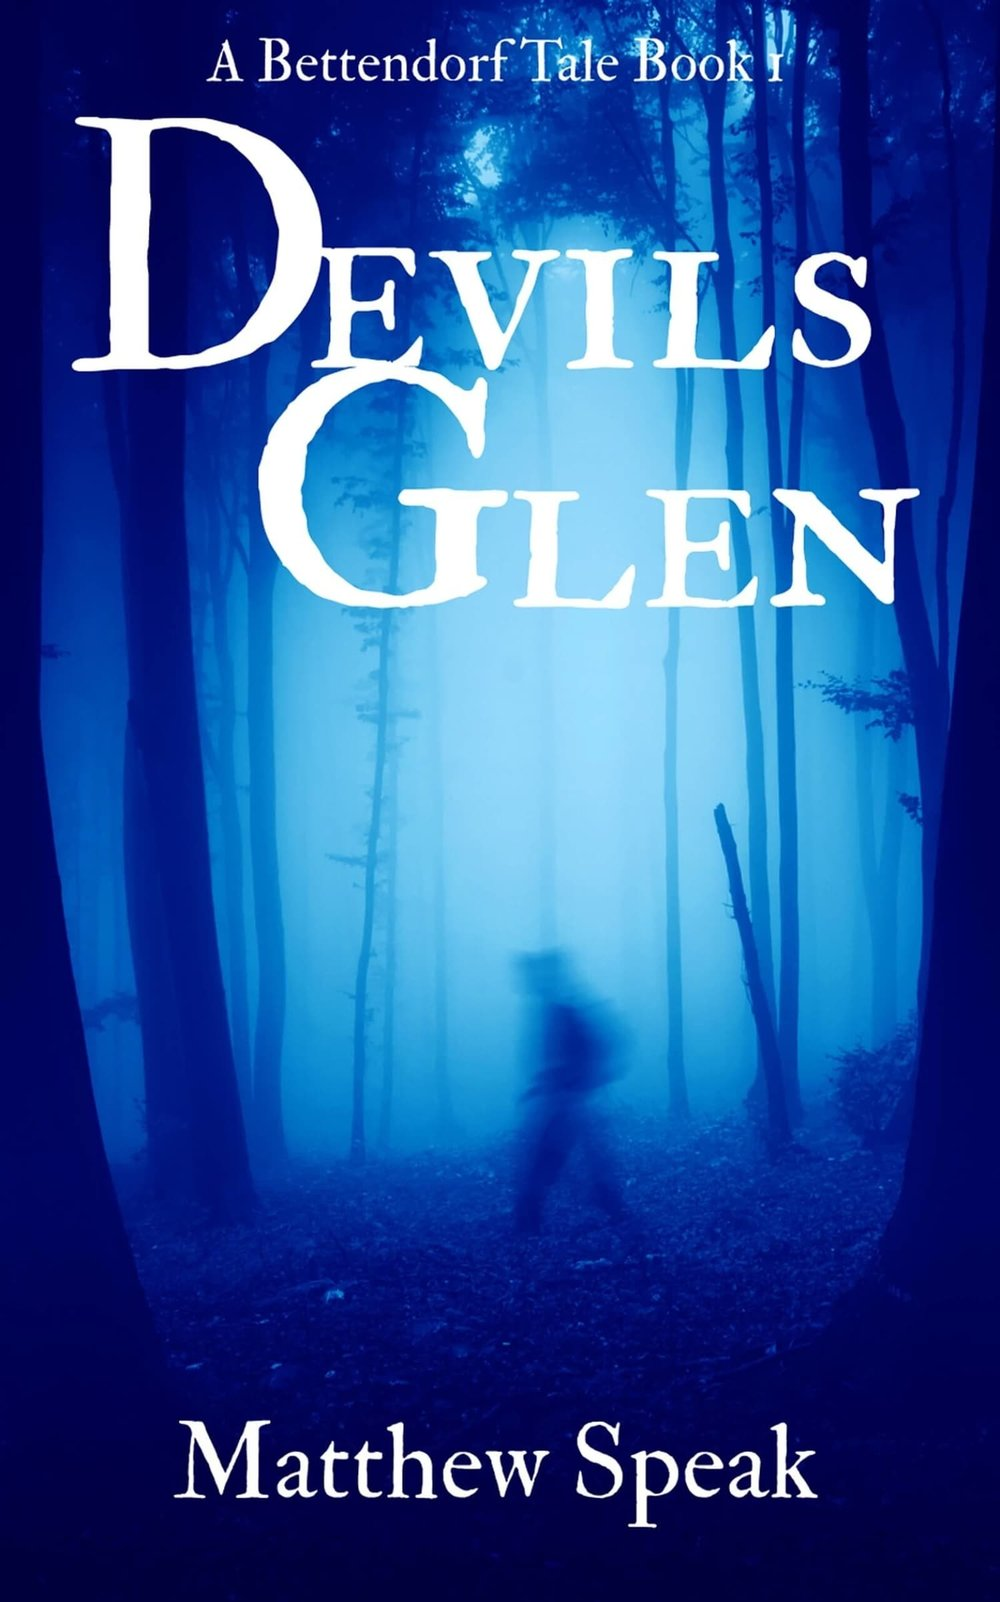 "Devil's Glen - ""Seek the gates and save the boy.""Welcome to Bettendorf. At first glance, it seems like a typical Midwestern town, but take a closer look and you might be surprised.High schooler Jack Davies sees the darkness coming; he lives with it. Cold voices call out from the closet door; dead hands reach up from under his bed. Although he doesn't know it, Jack wields a great power.Now, a smooth-talking preacher has come to town promising freedom and redemption for all who follow his words. But like Jack, this preacher has a secret. Those who heed his call find themselves pawns in his plan to awaken an ancient evil, long ago imprisoned in the dank caves of Devils Glen Park. With the help of a widowed police officer, a babysitter, and a mysterious spirit called Ava, Jack must find the truth about his hidden power in time to battle the dark forces that have descended upon his town. If he fails, our world will be cast into darkness forever."